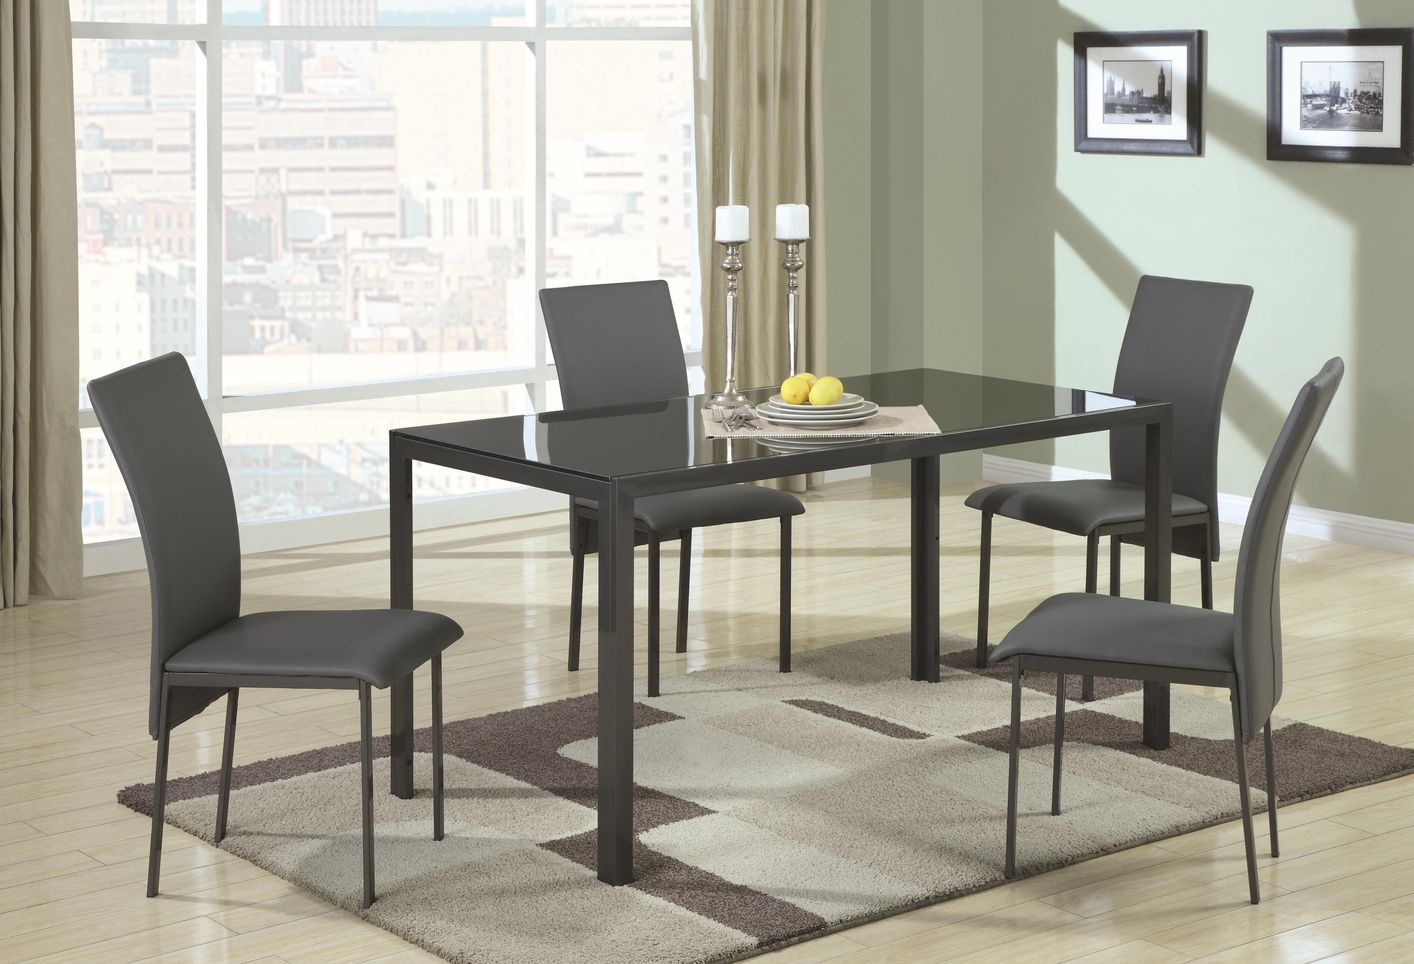 shelby black metal and glass dining table set steal a sofa